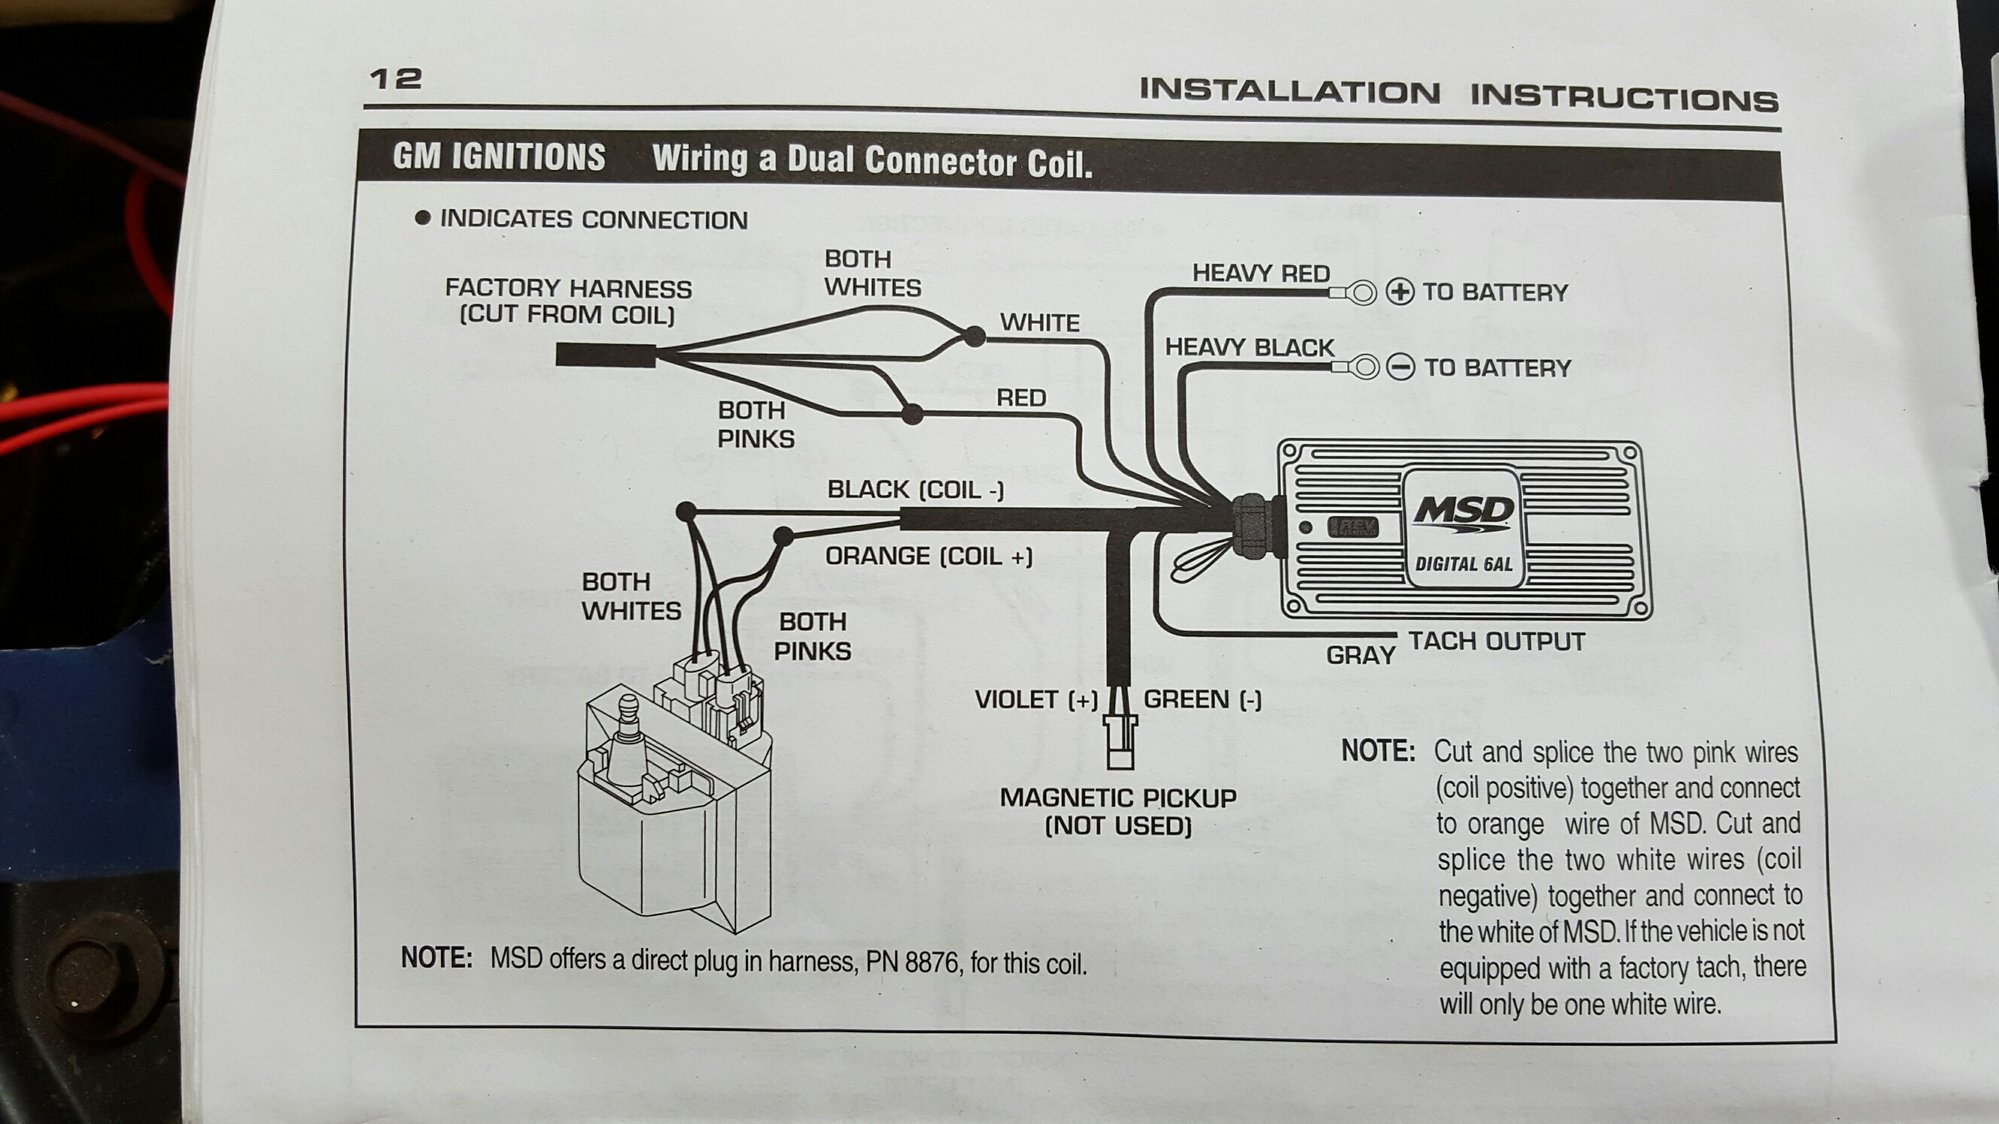 Msd Digital 6Al Pn 6425 Wiring Diagram from static-resources.imageservice.cloud